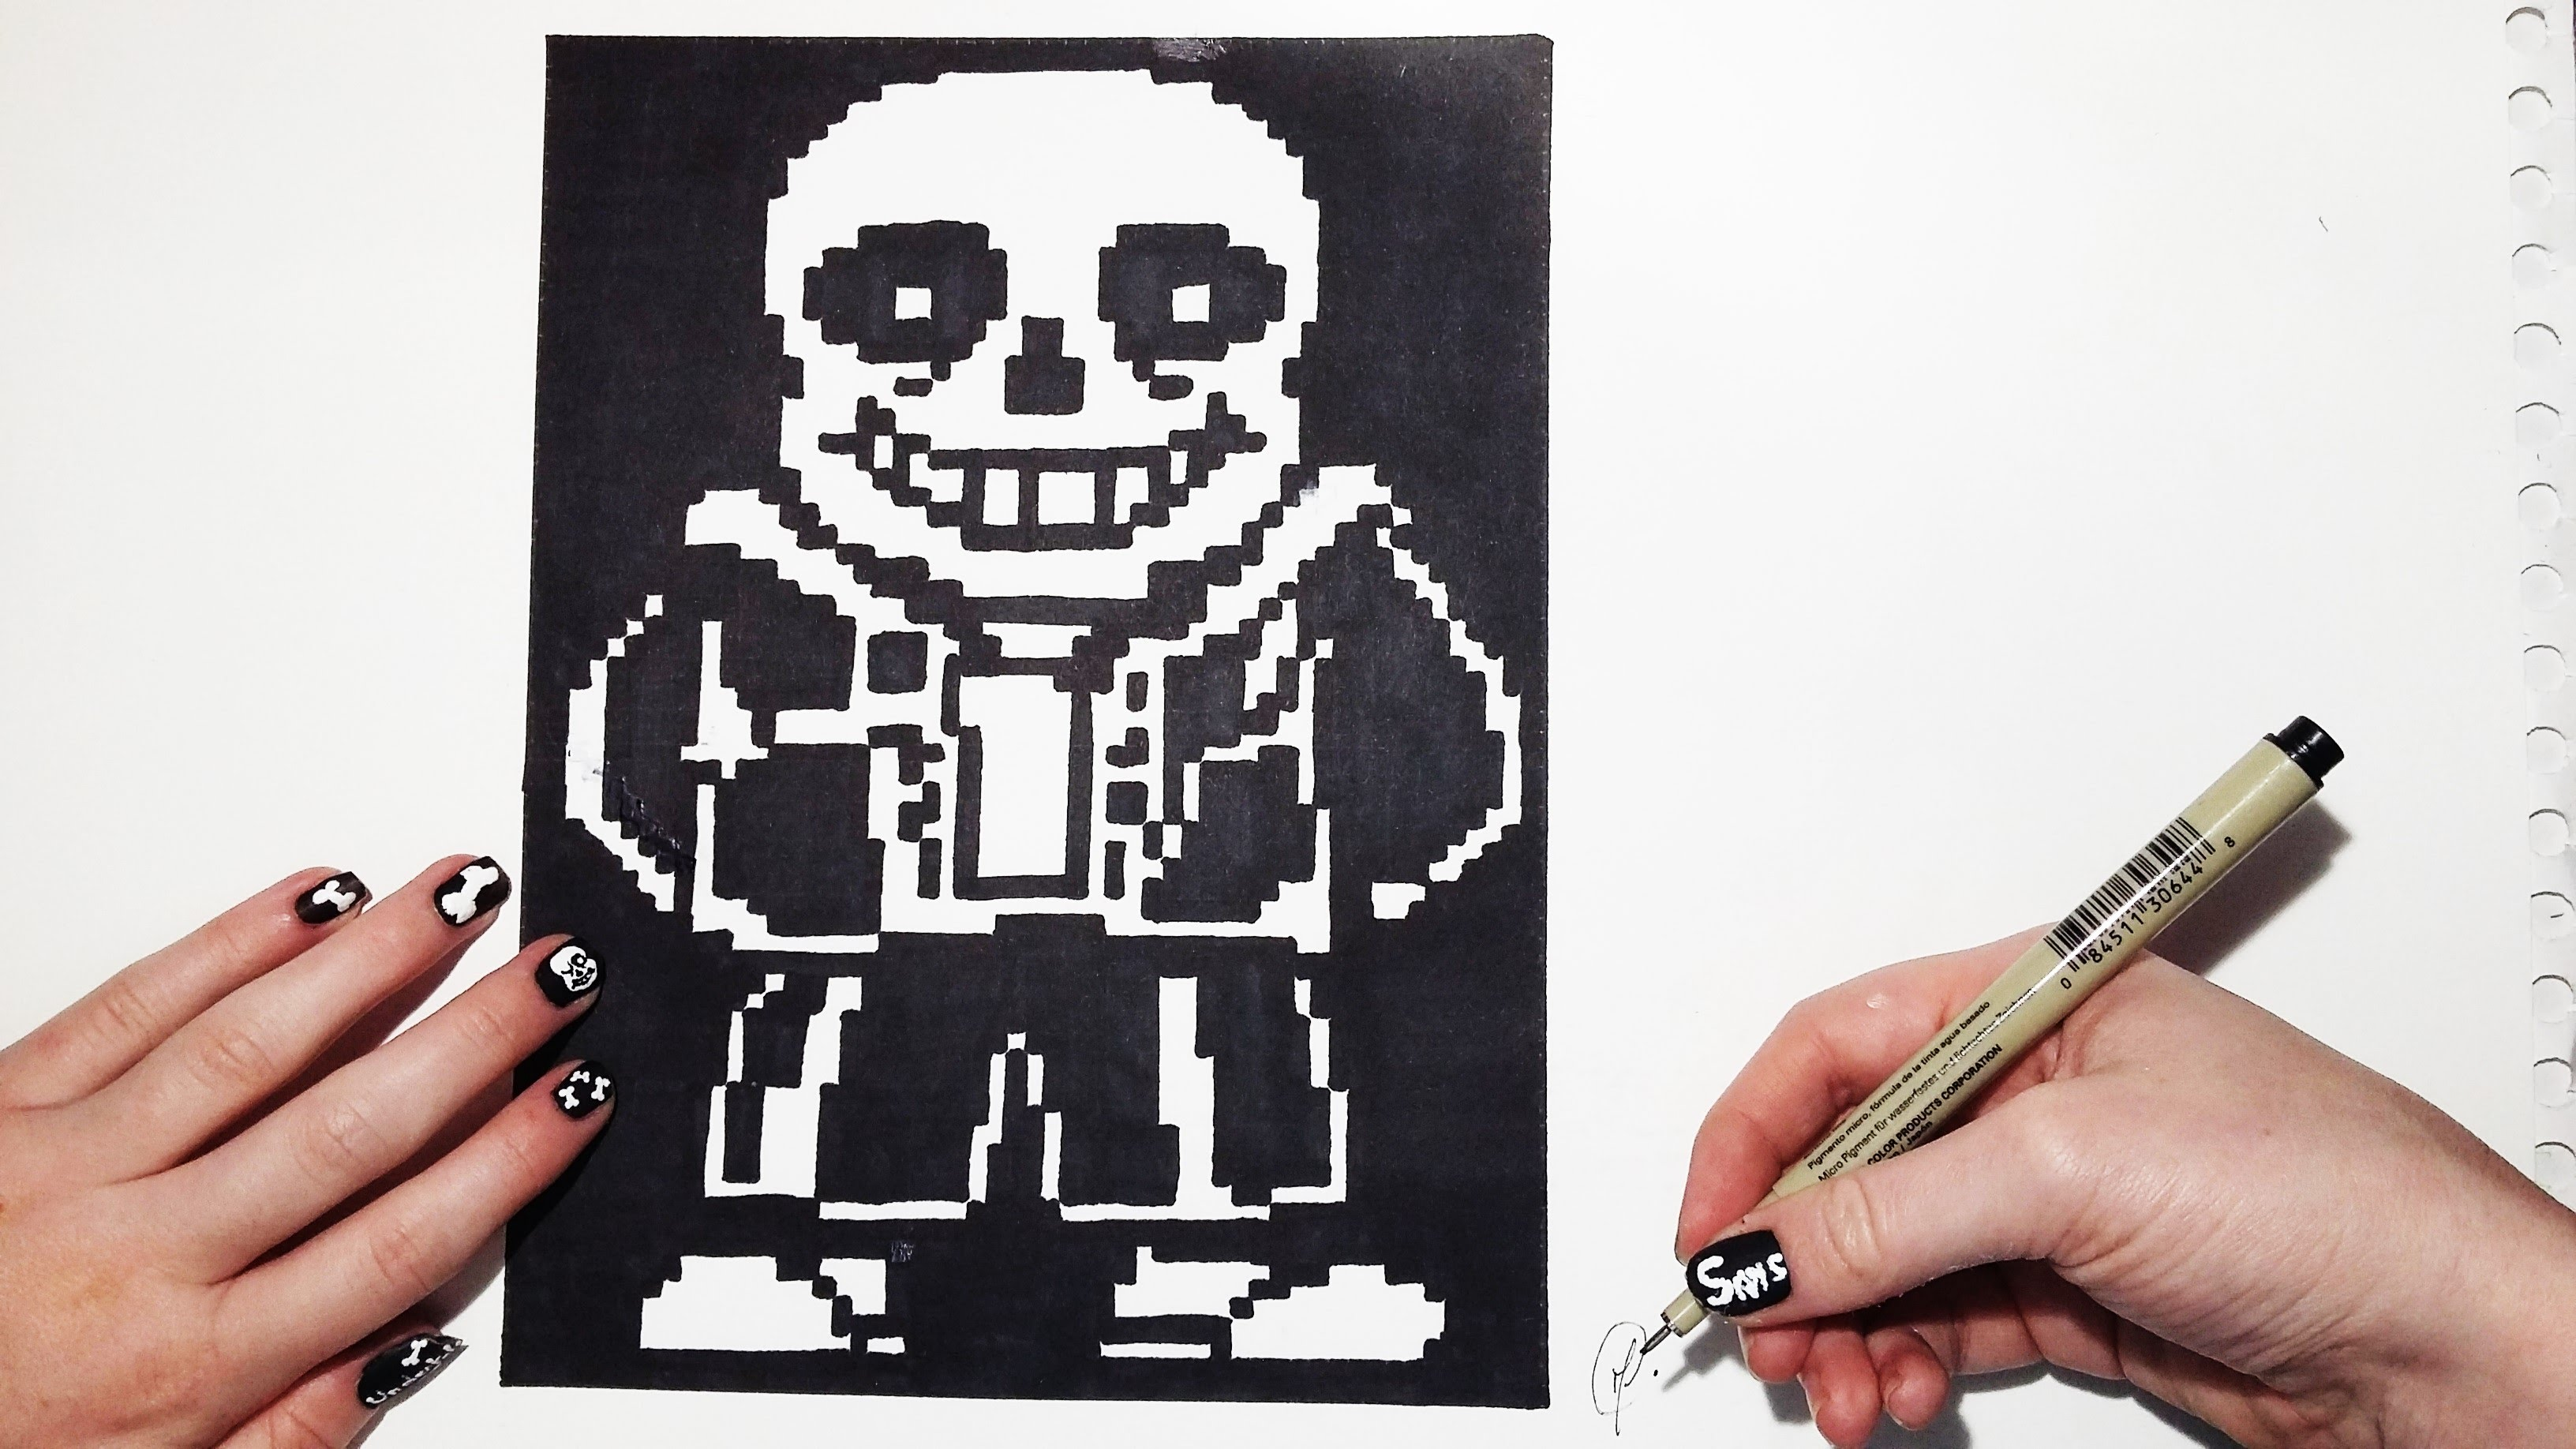 Drawn pixel art pencil #11